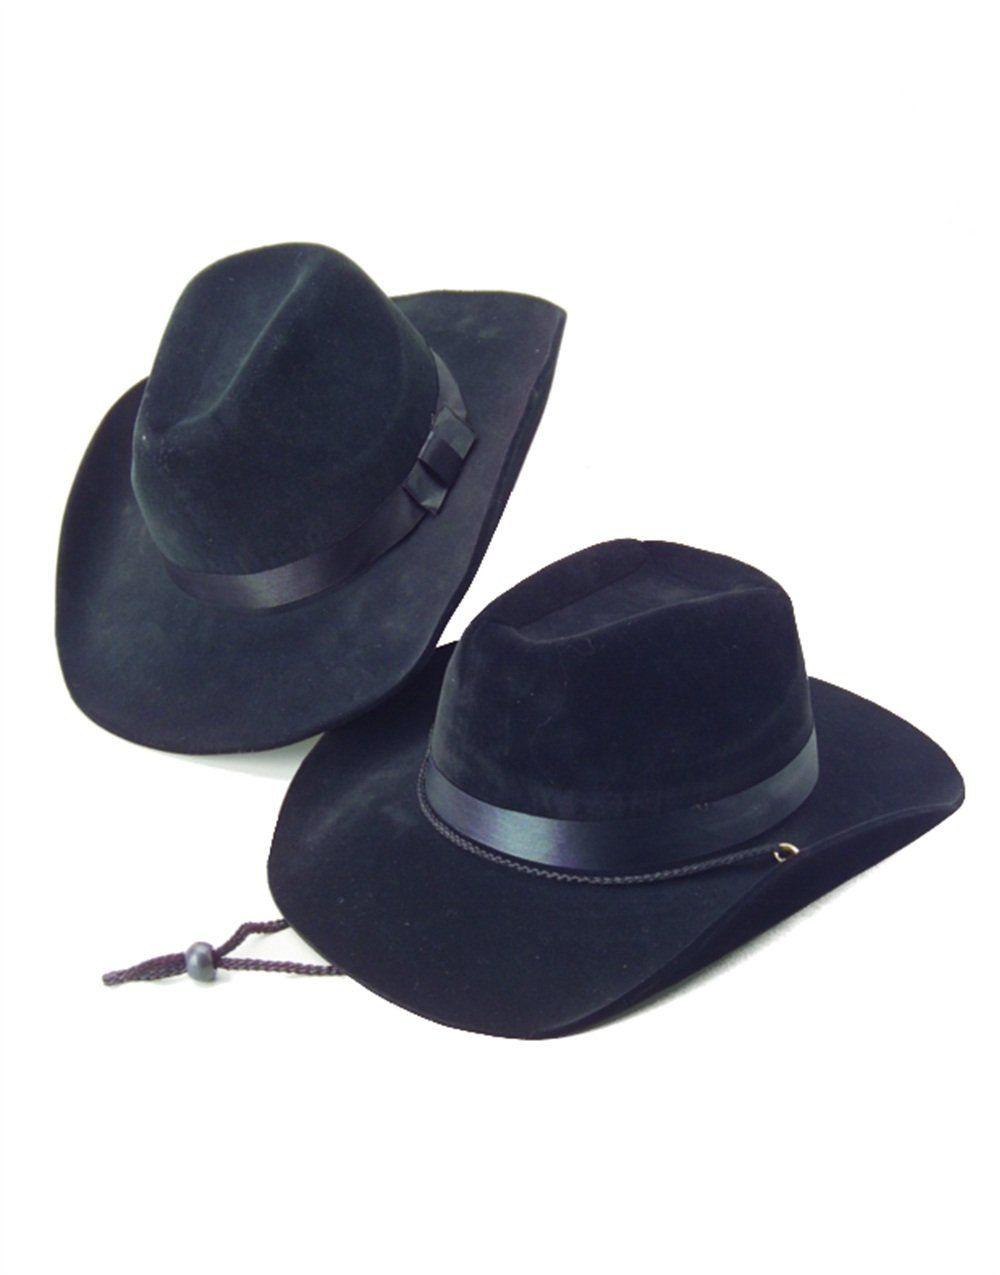 713afdec77d Amazon.com  Country Black Cow Boy or Girl Felt Costume Hat  Costume  Headwear And Hats  Clothing